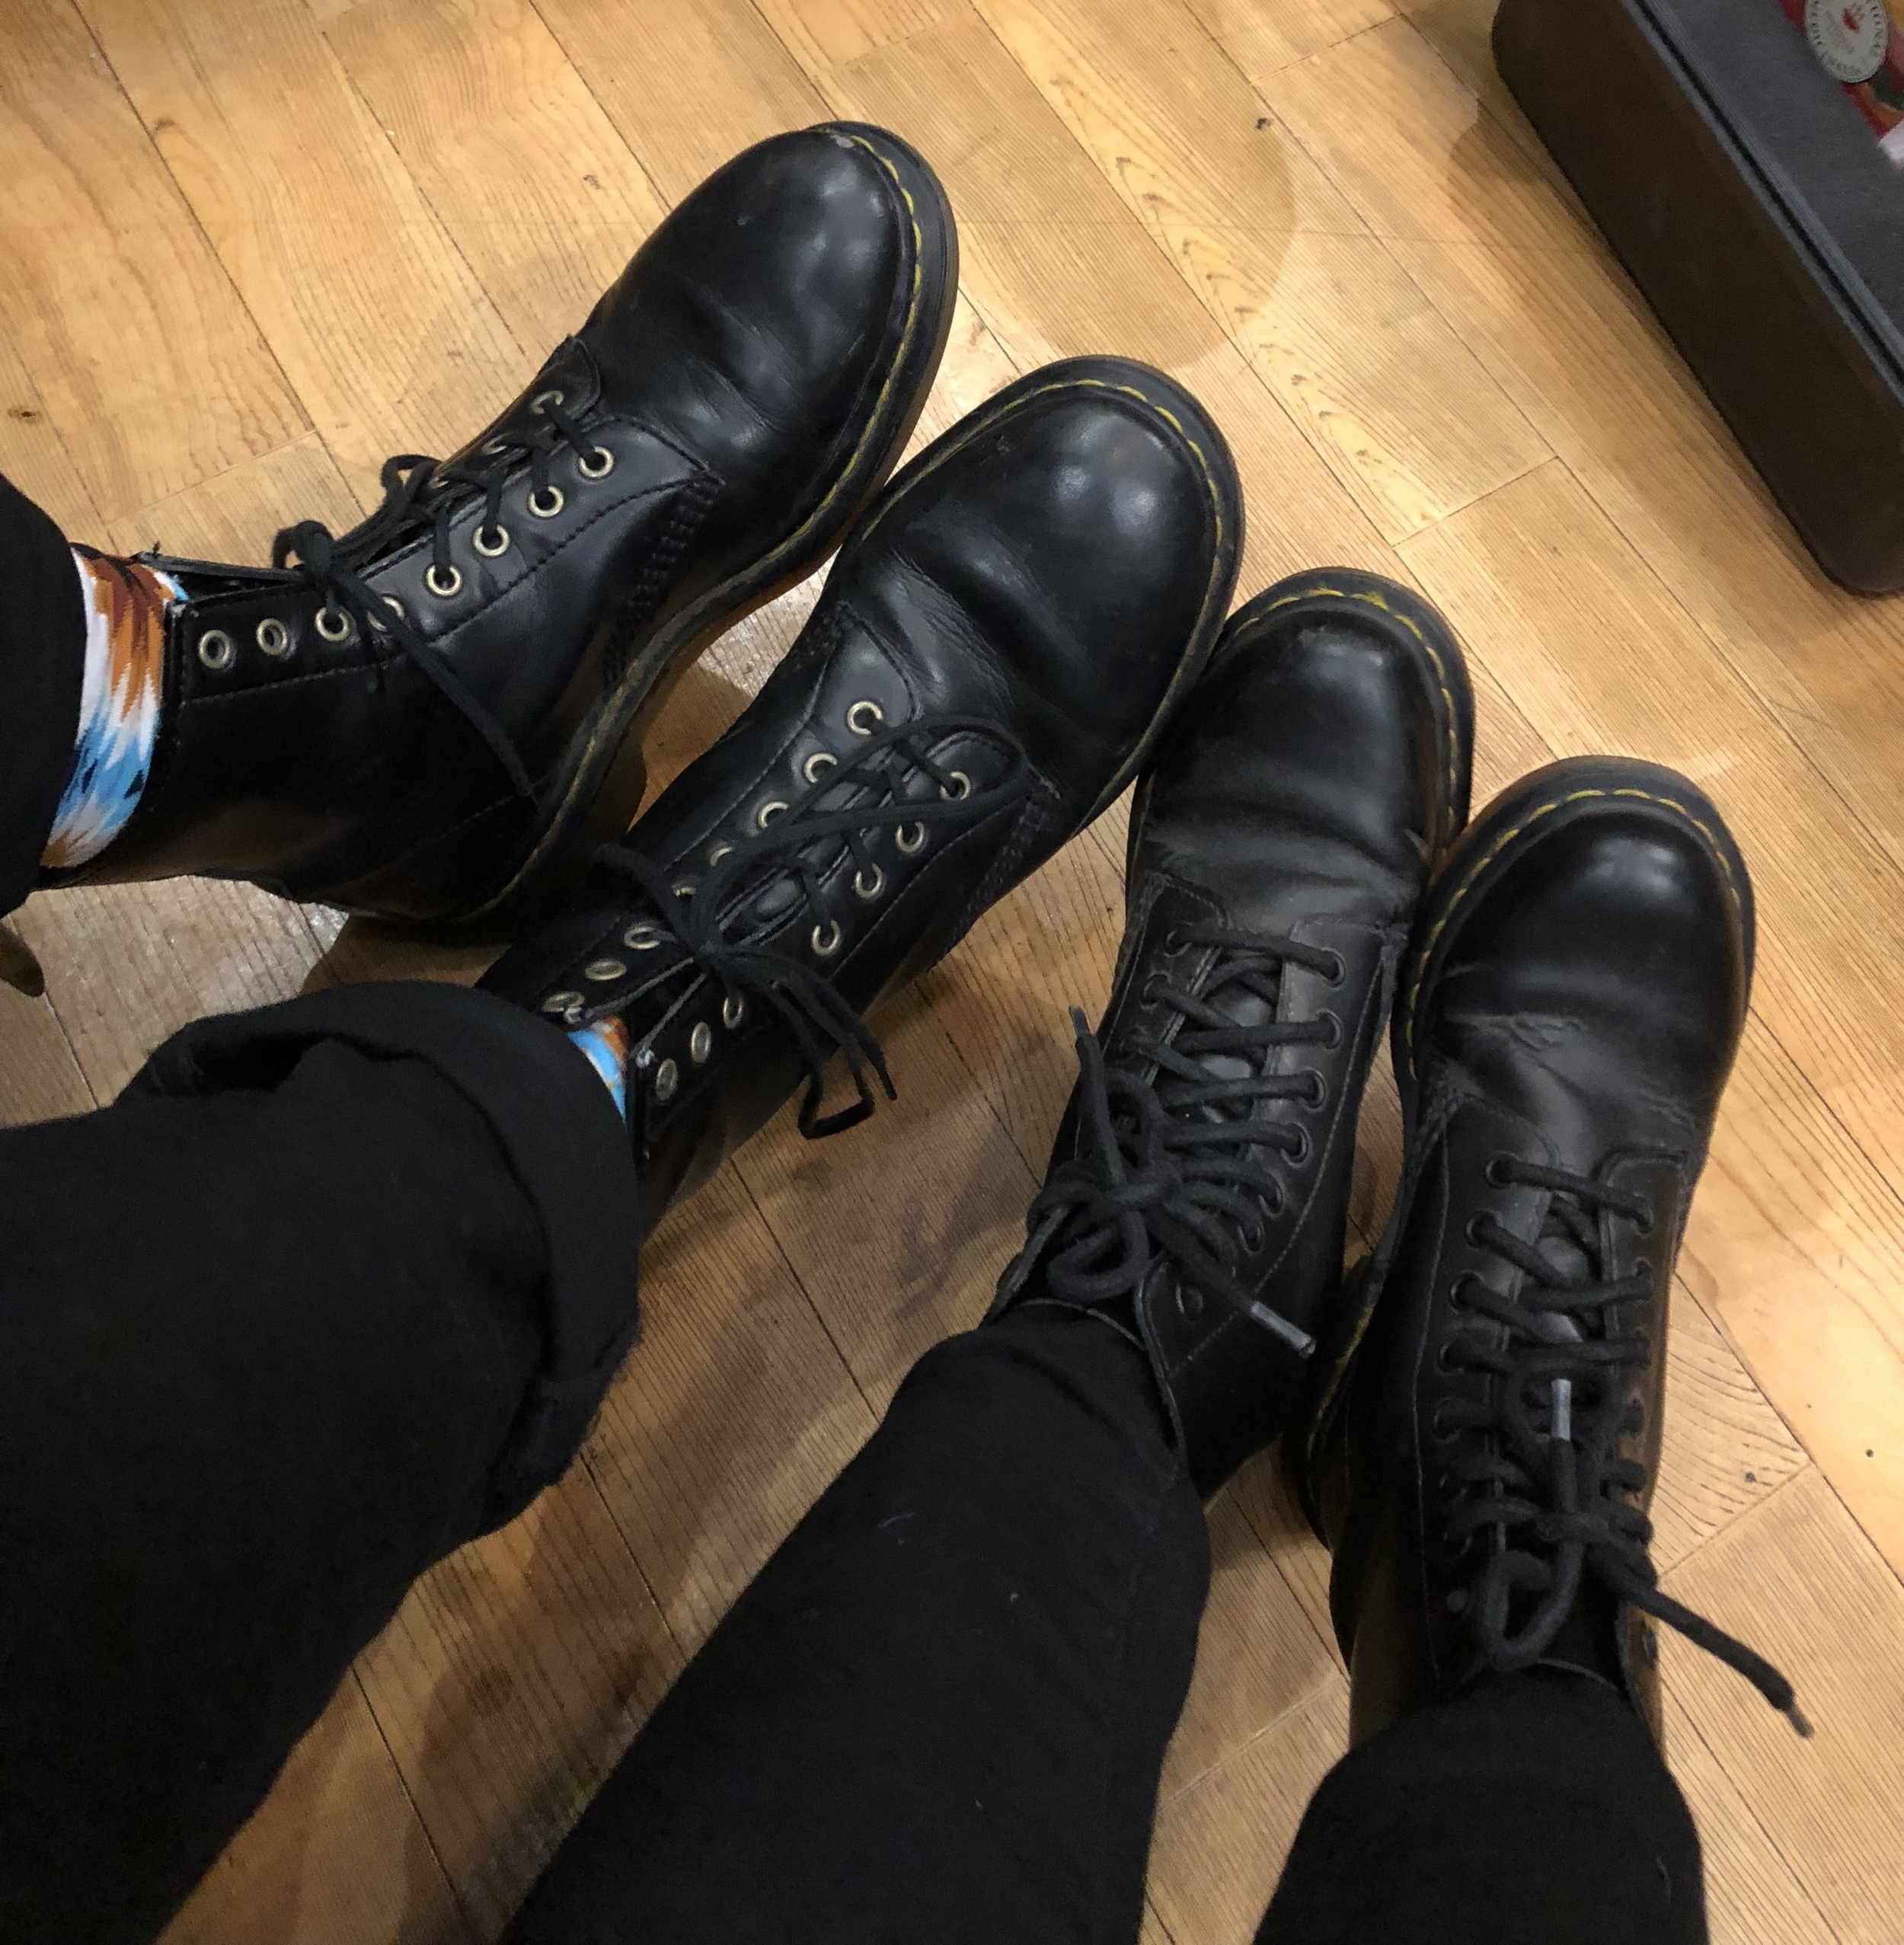 Keith and I turned out to both be wearing our Doc Martens! Except his shoes are vegan.